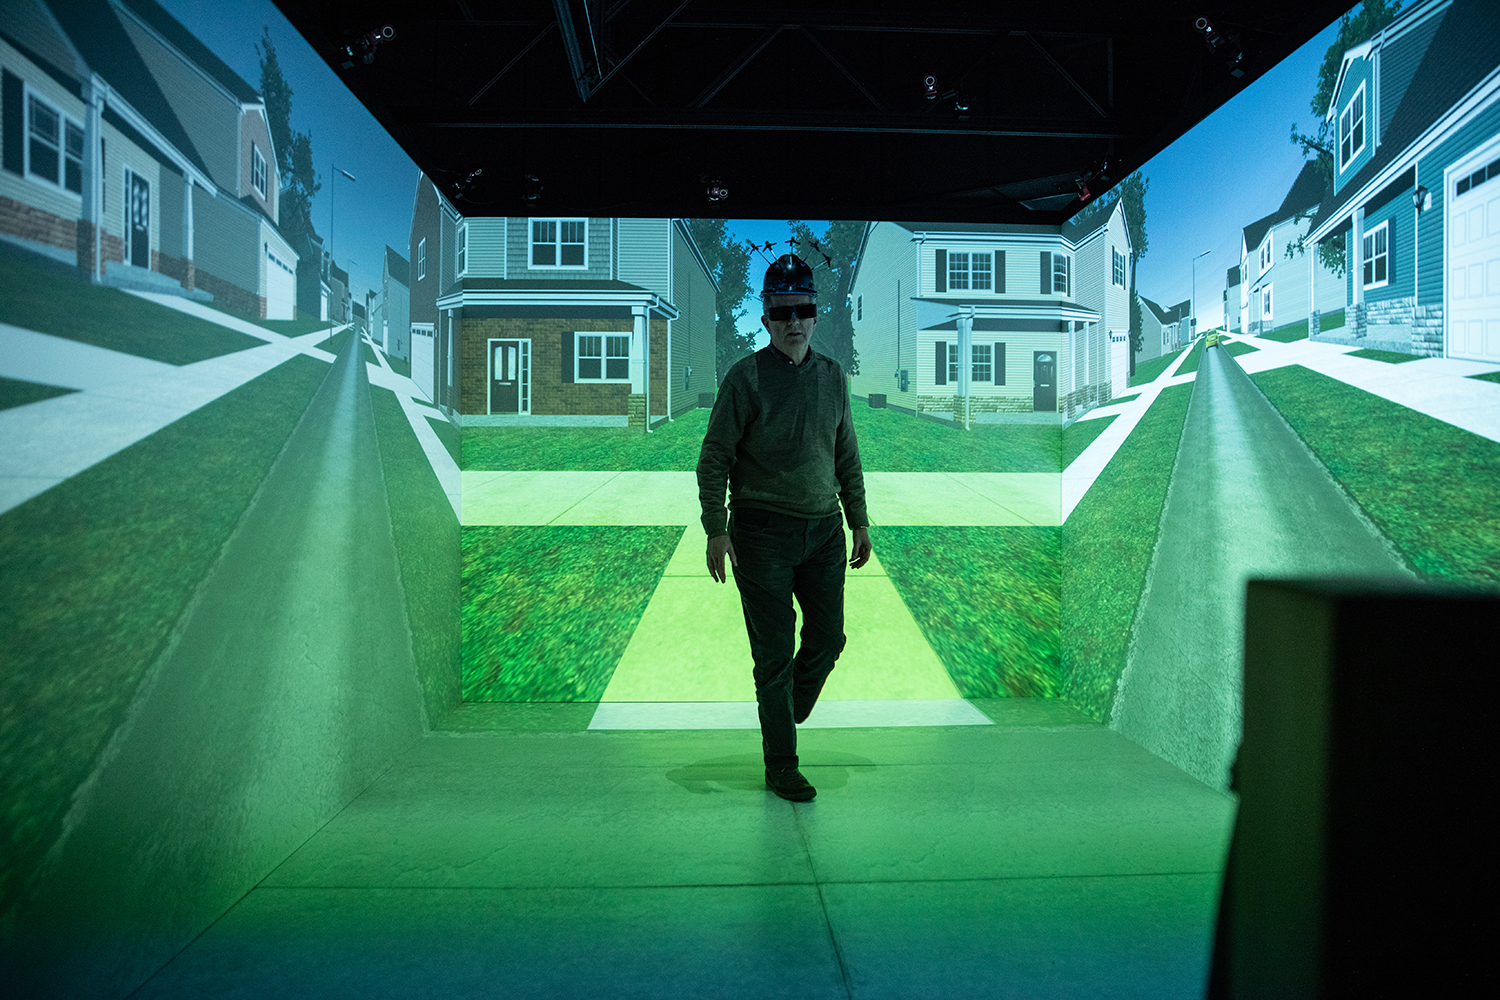 Hank Lab Co-Director Joe Kearney walks through one of the virtual reality environments wearing a headset with sensors attached at Hank Virtual Laboratory on October 24, 2019. The lab conducts research on pedestrian behavior, and has collaborated with companies such as Toyota.